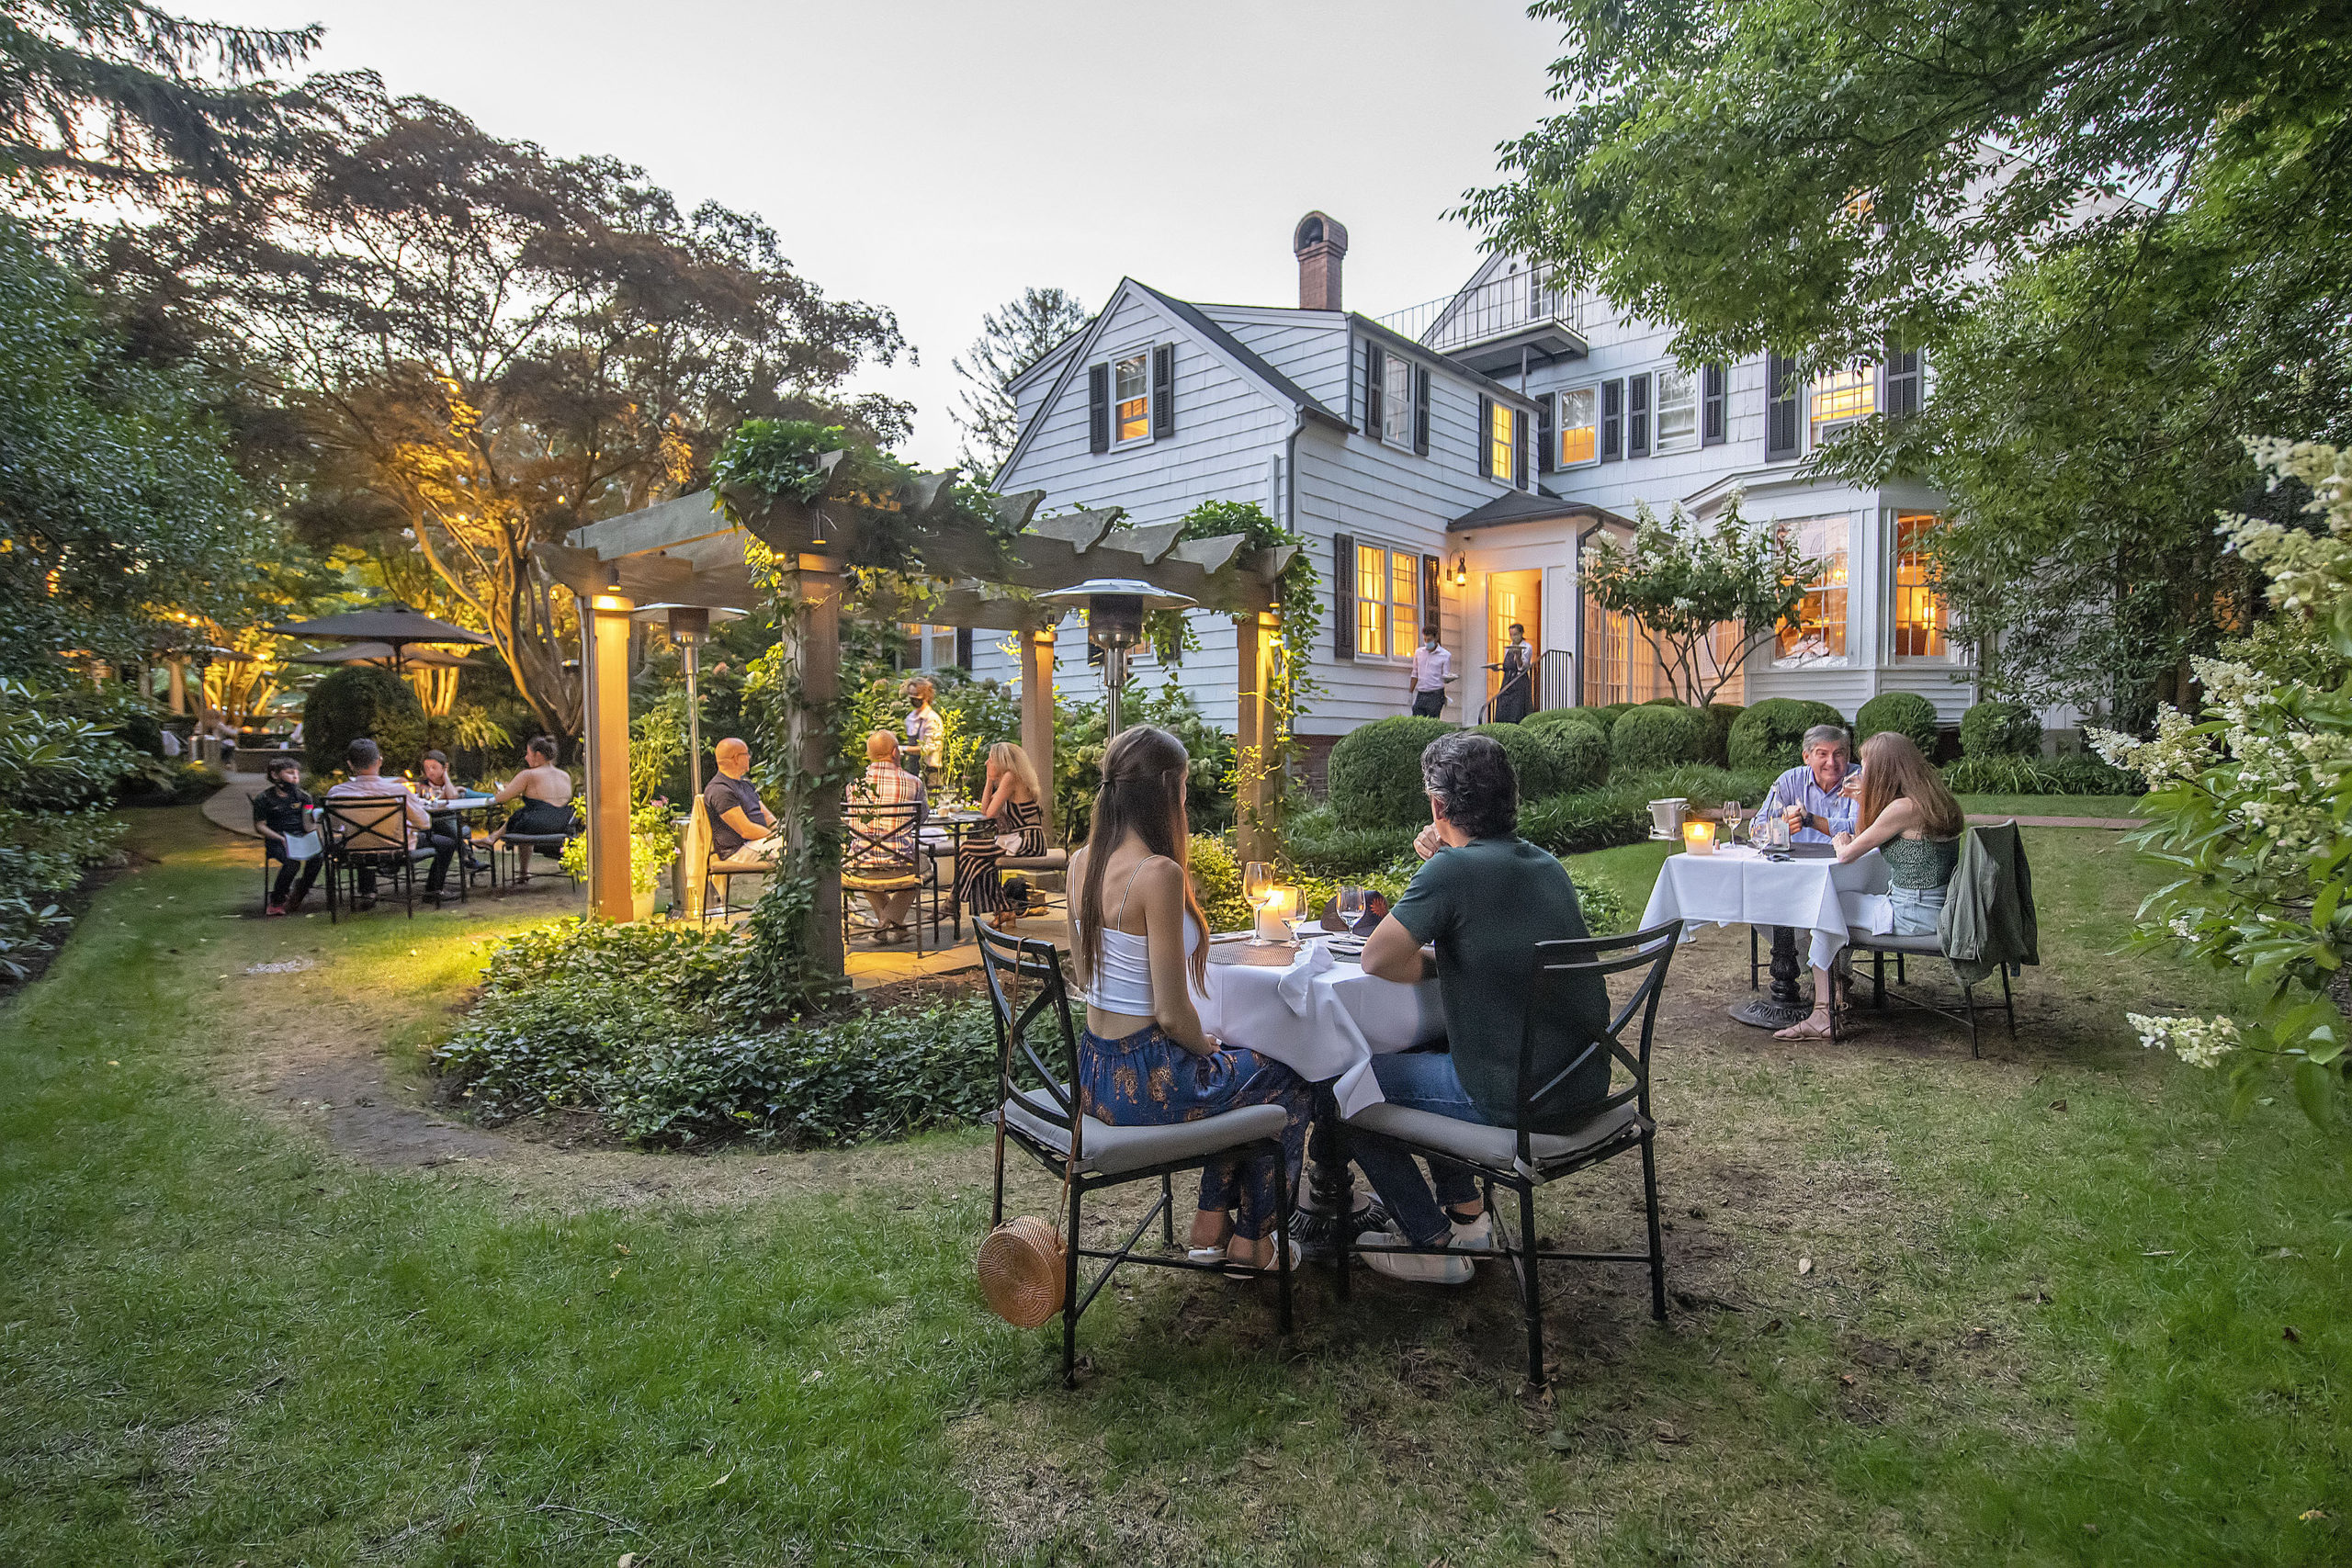 The outdoor dining space in the gardens behind the 1770 House restaurant in East Hampton created in response to the COVID-19 pandemic.  MICHAEL HELLER